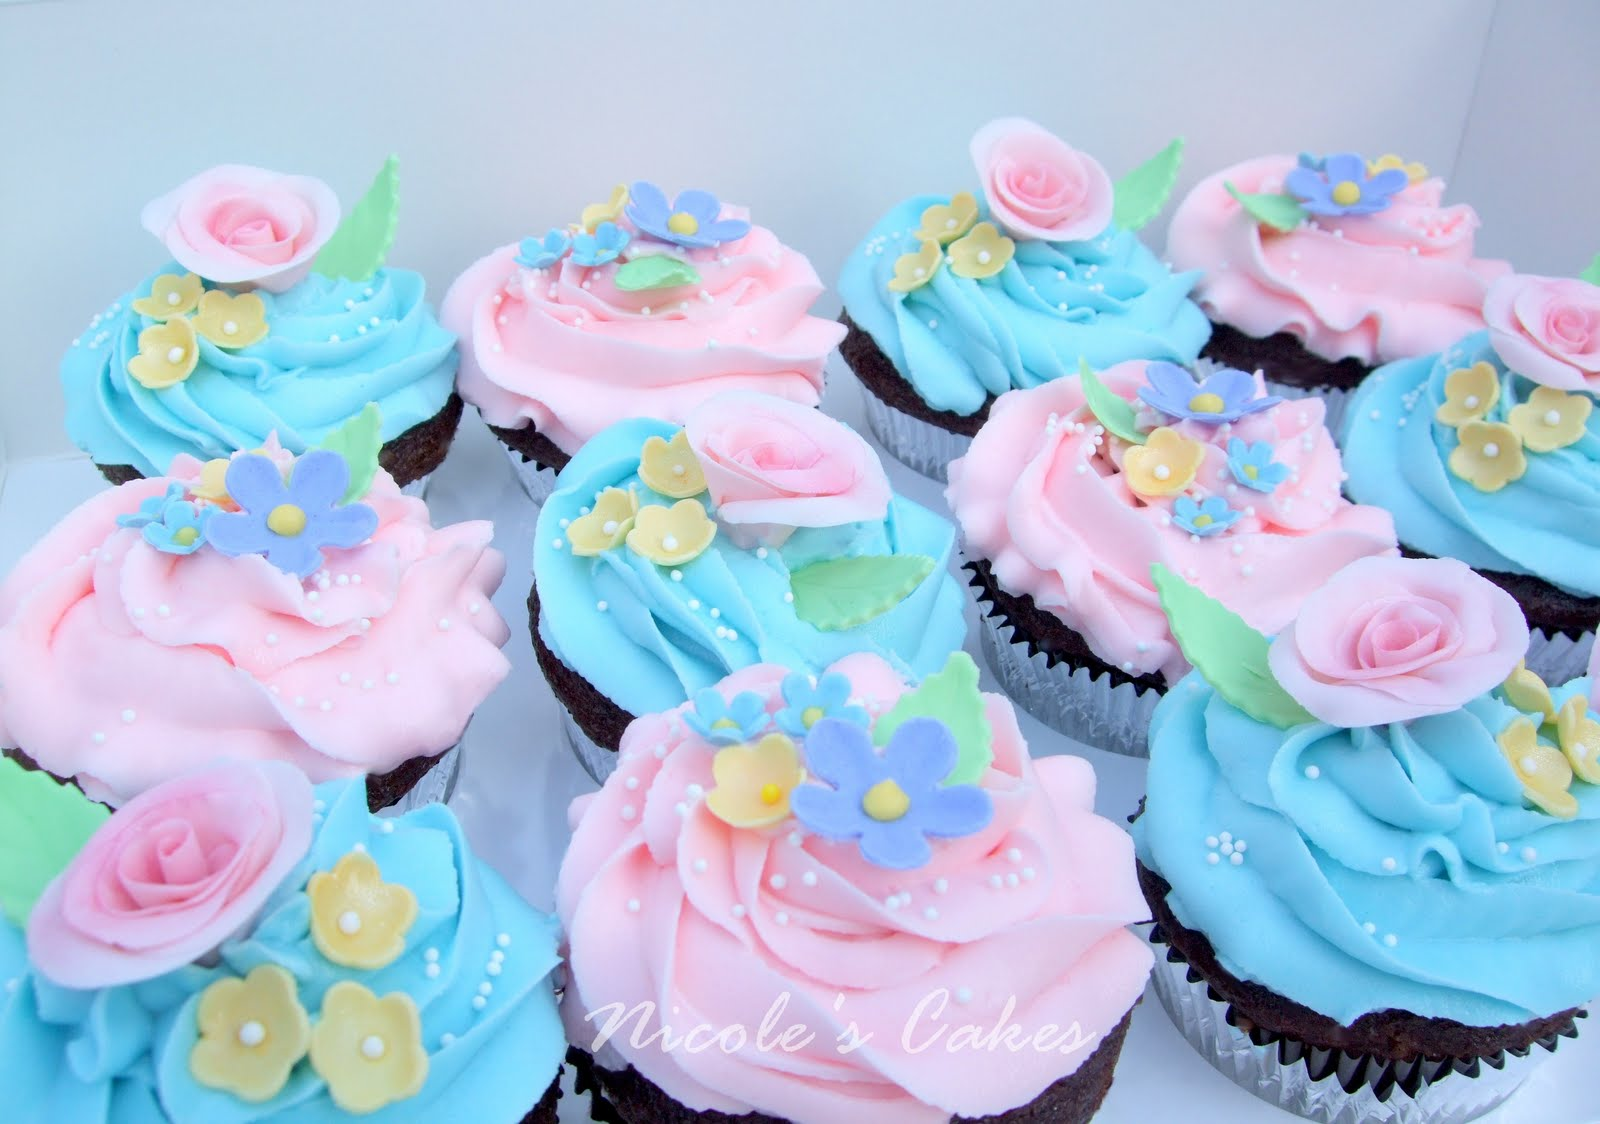 Confections Cakes & Creations Pretty Spring Flower Cupcakes